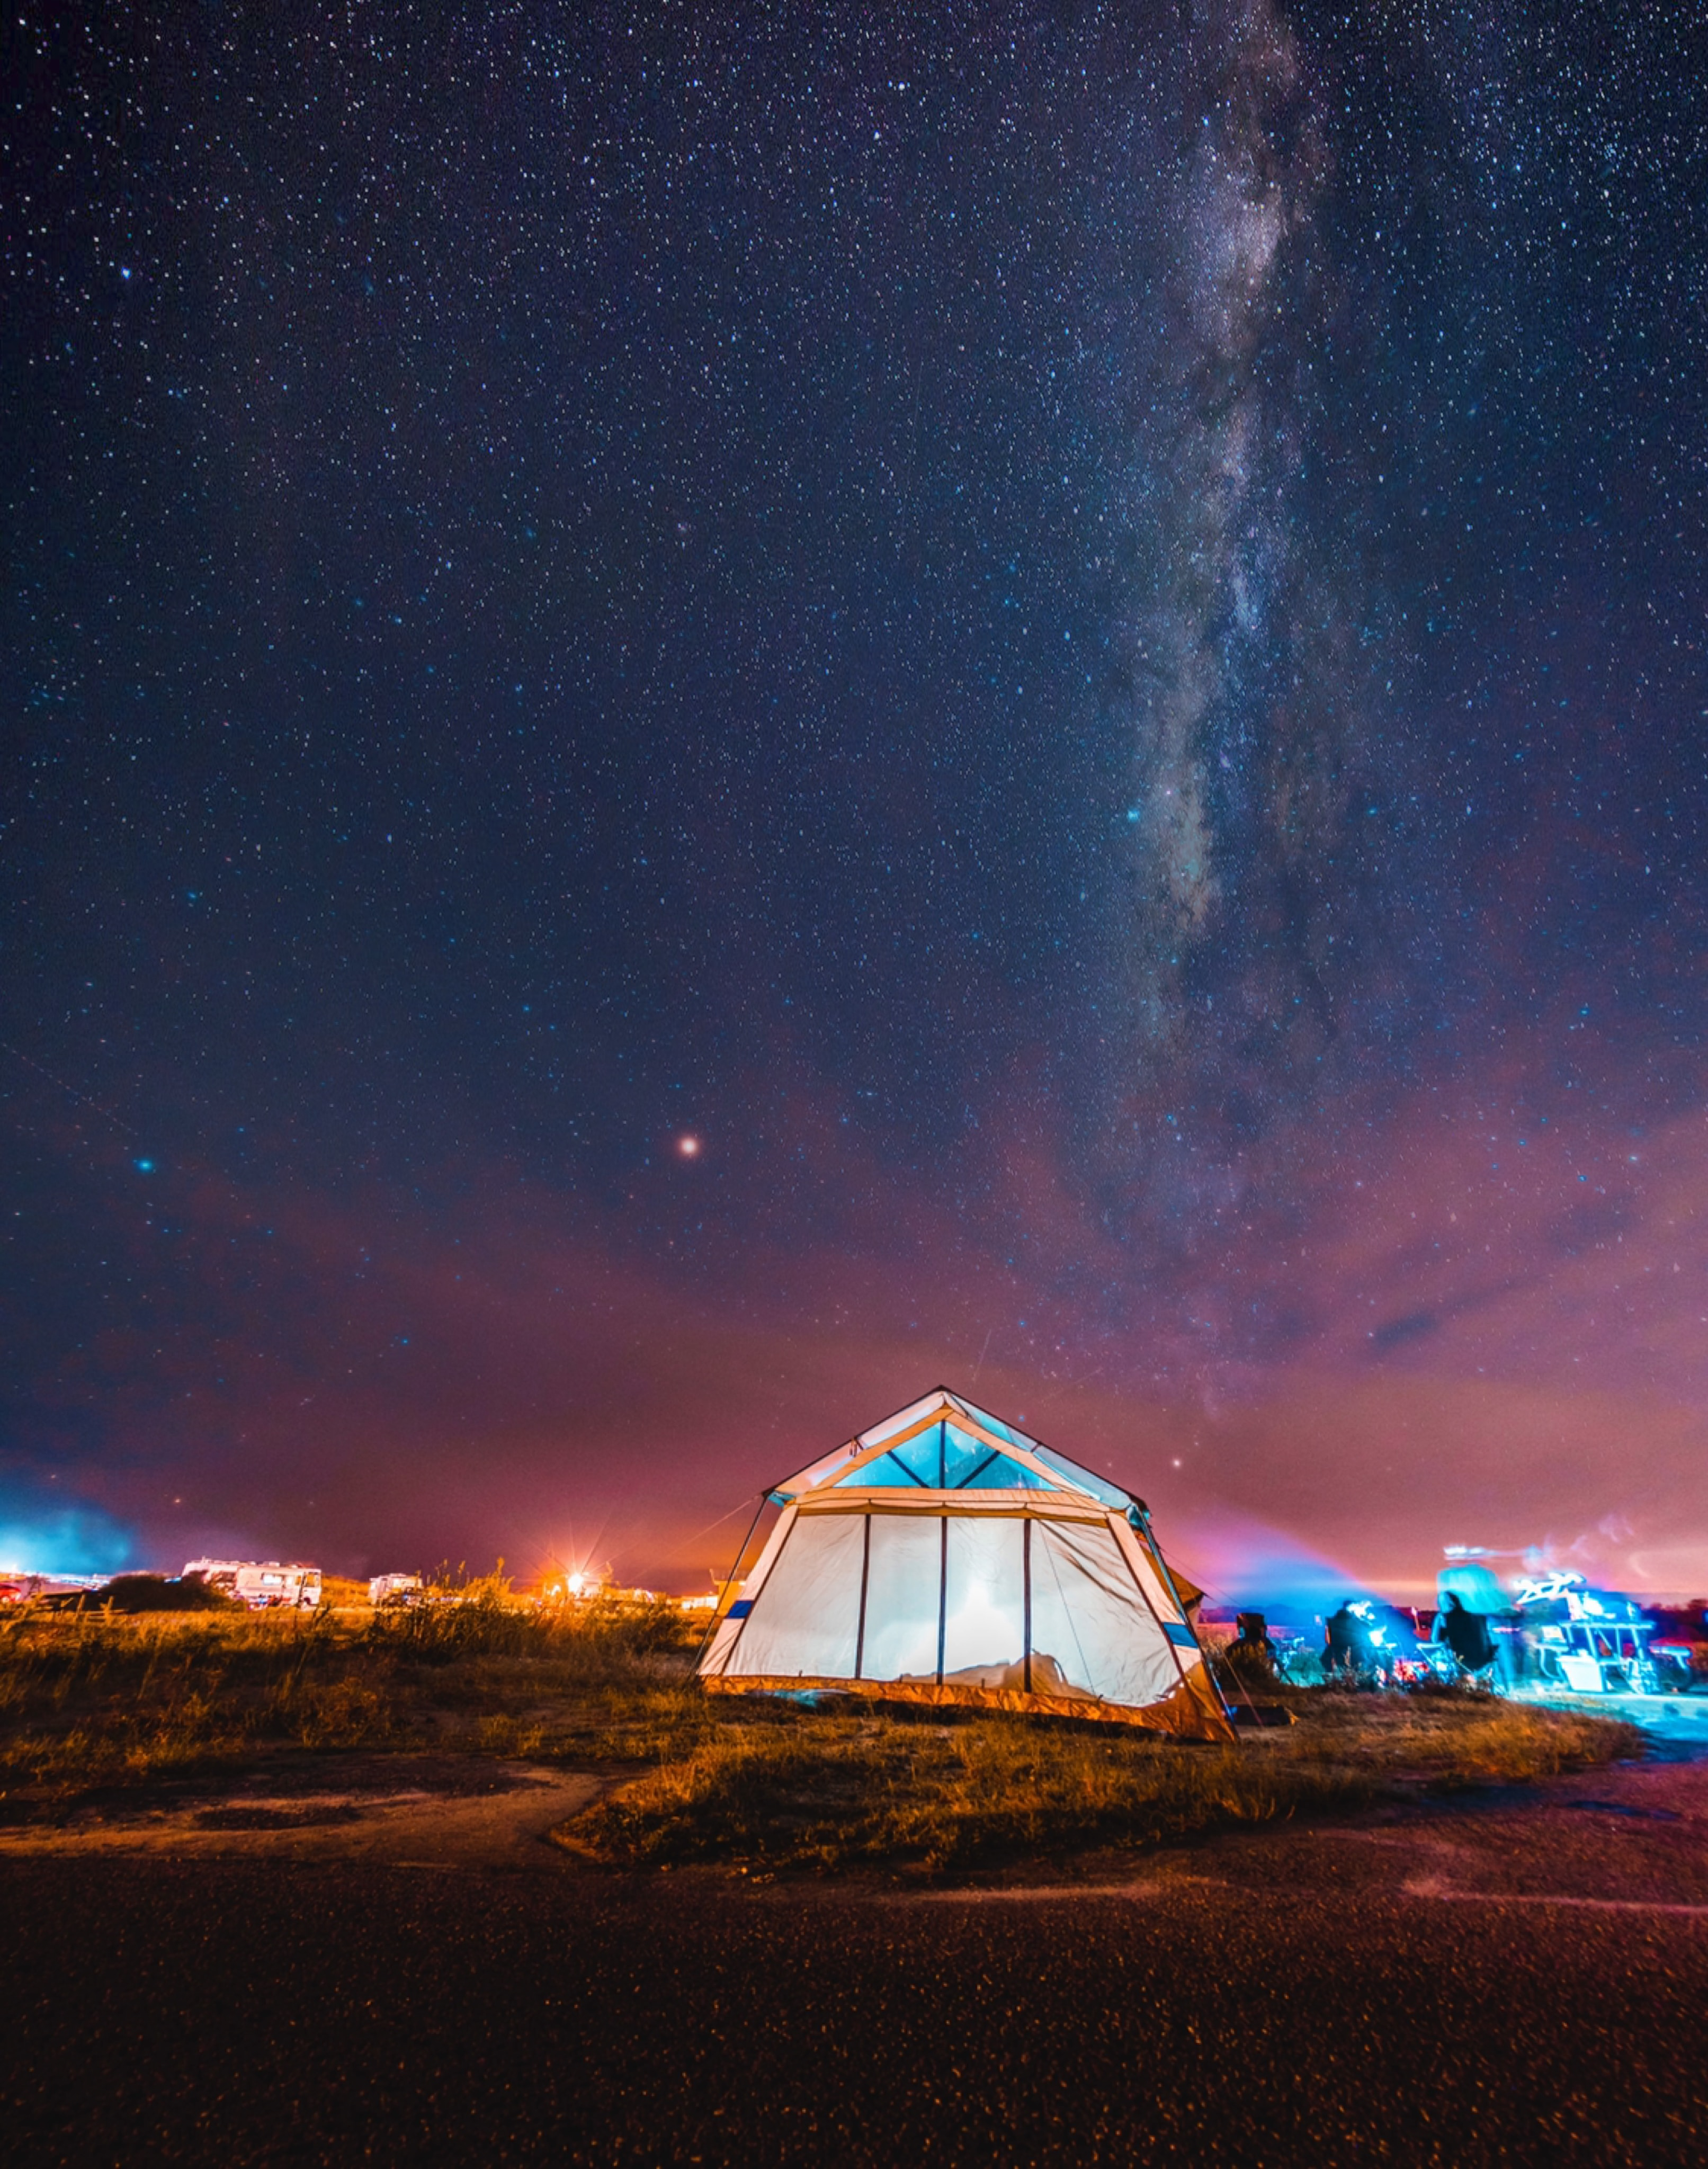 124970 download wallpaper Camping, Night, Miscellanea, Miscellaneous, Starry Sky, Tent, Campsite screensavers and pictures for free